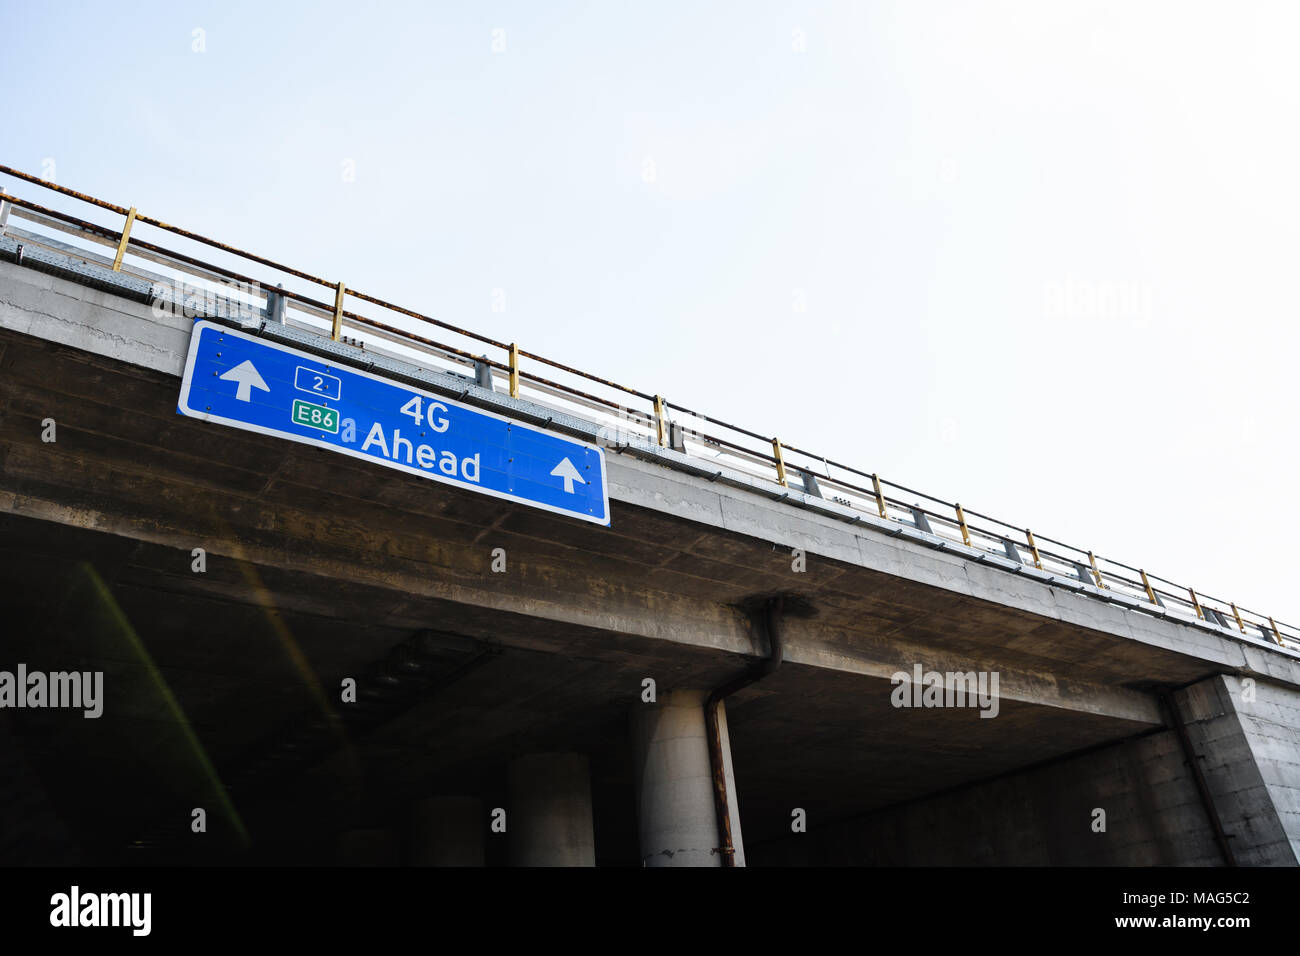 4G Ahead Blue Road Sign Against Clear Sky - Stock Image